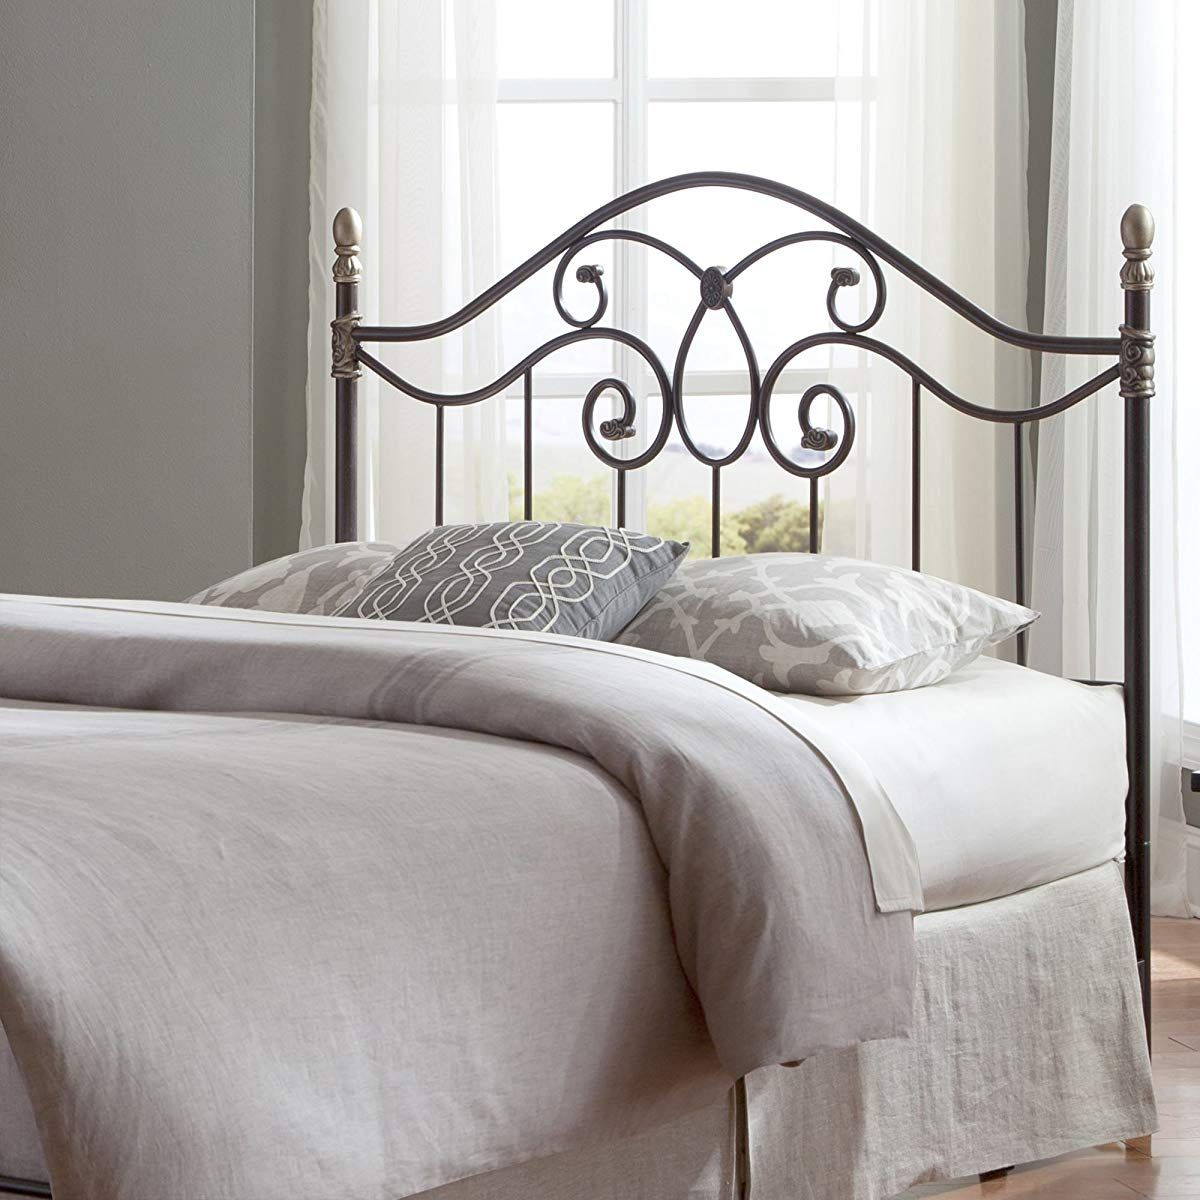 Fashion Bed Group Dynasty Headboard with Arched Metal